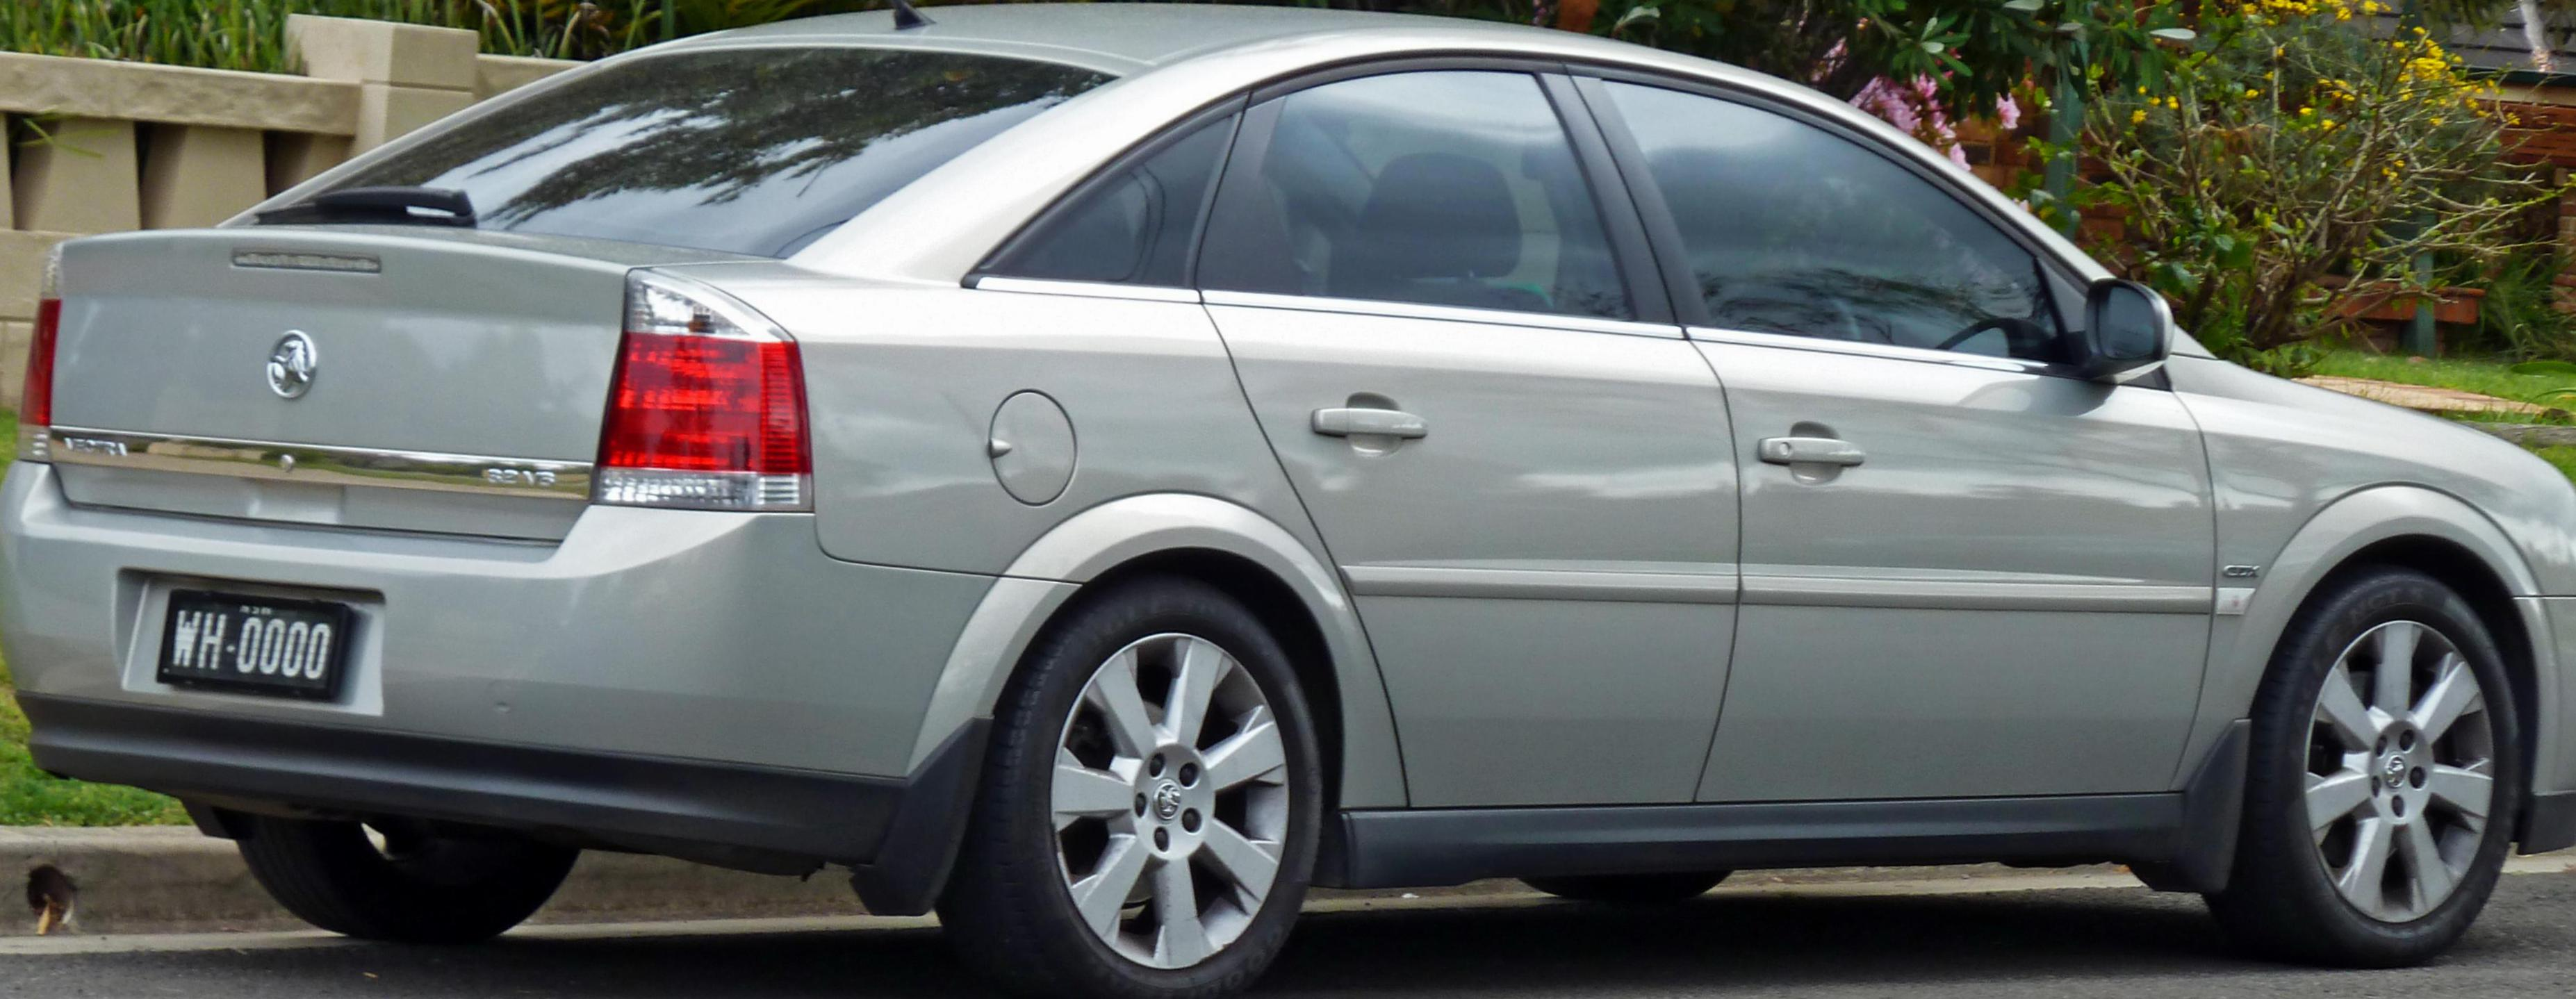 Opel Vectra C Hatchback model 2006